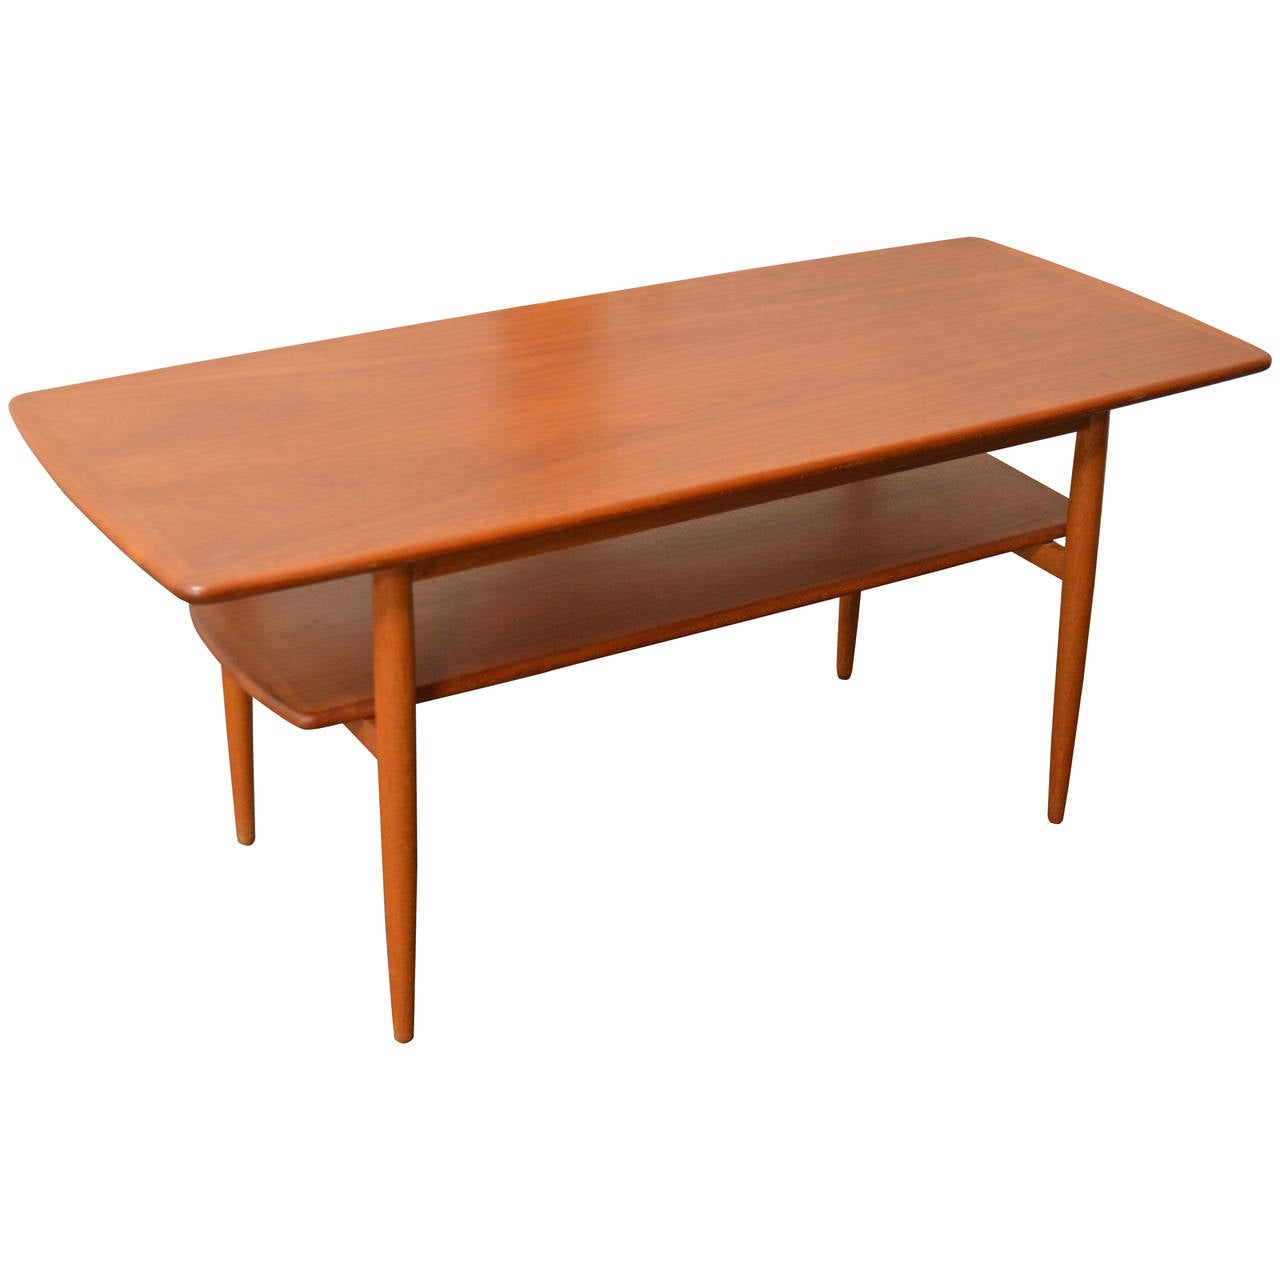 Swedish Mid-Century Modern Teak And Oak Narrow Coffee